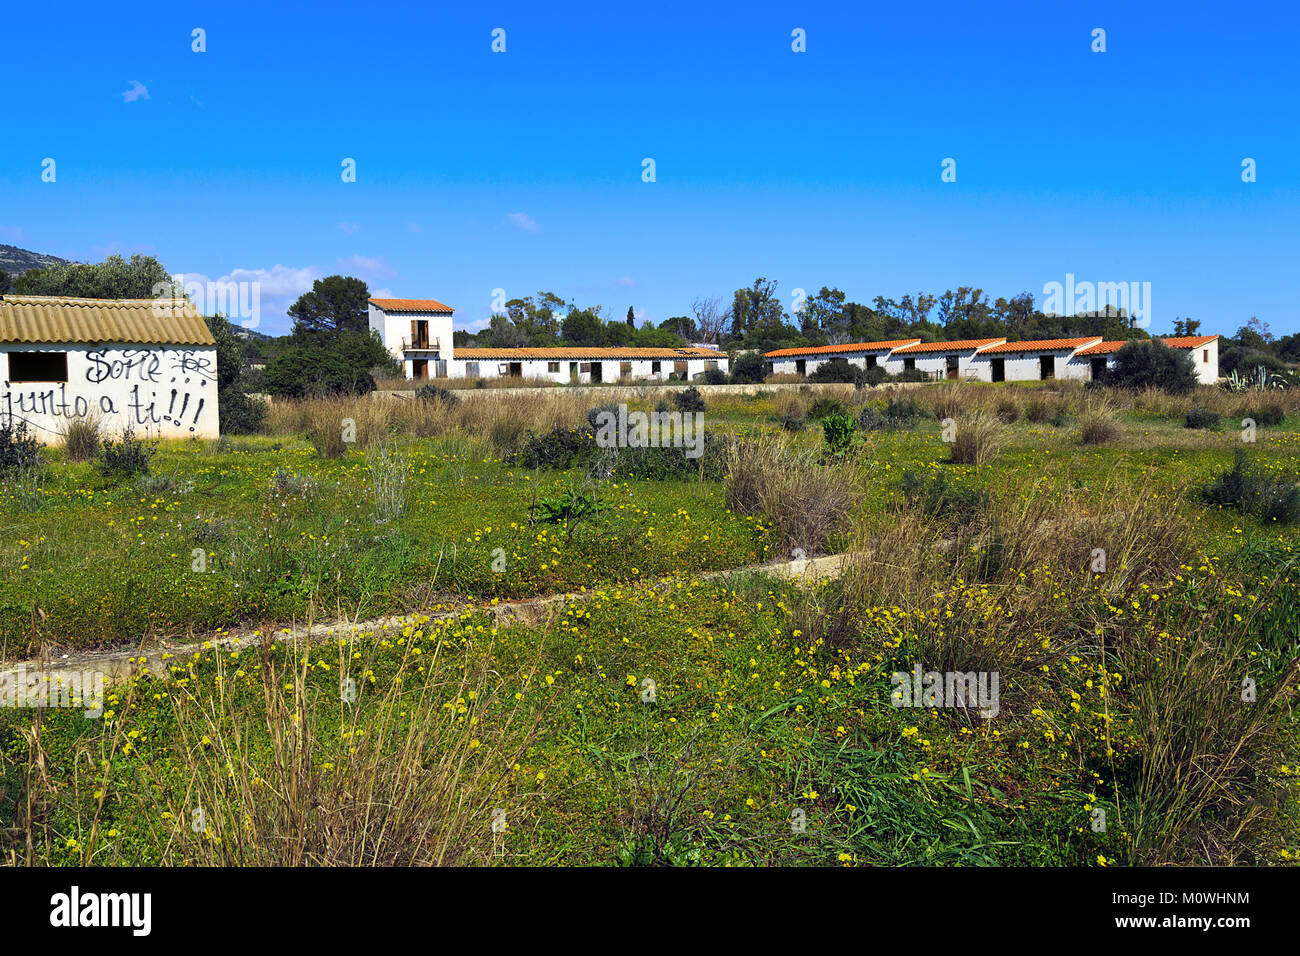 Dissused stables at Casa Blanca Alcossebre Spain - Stock Image